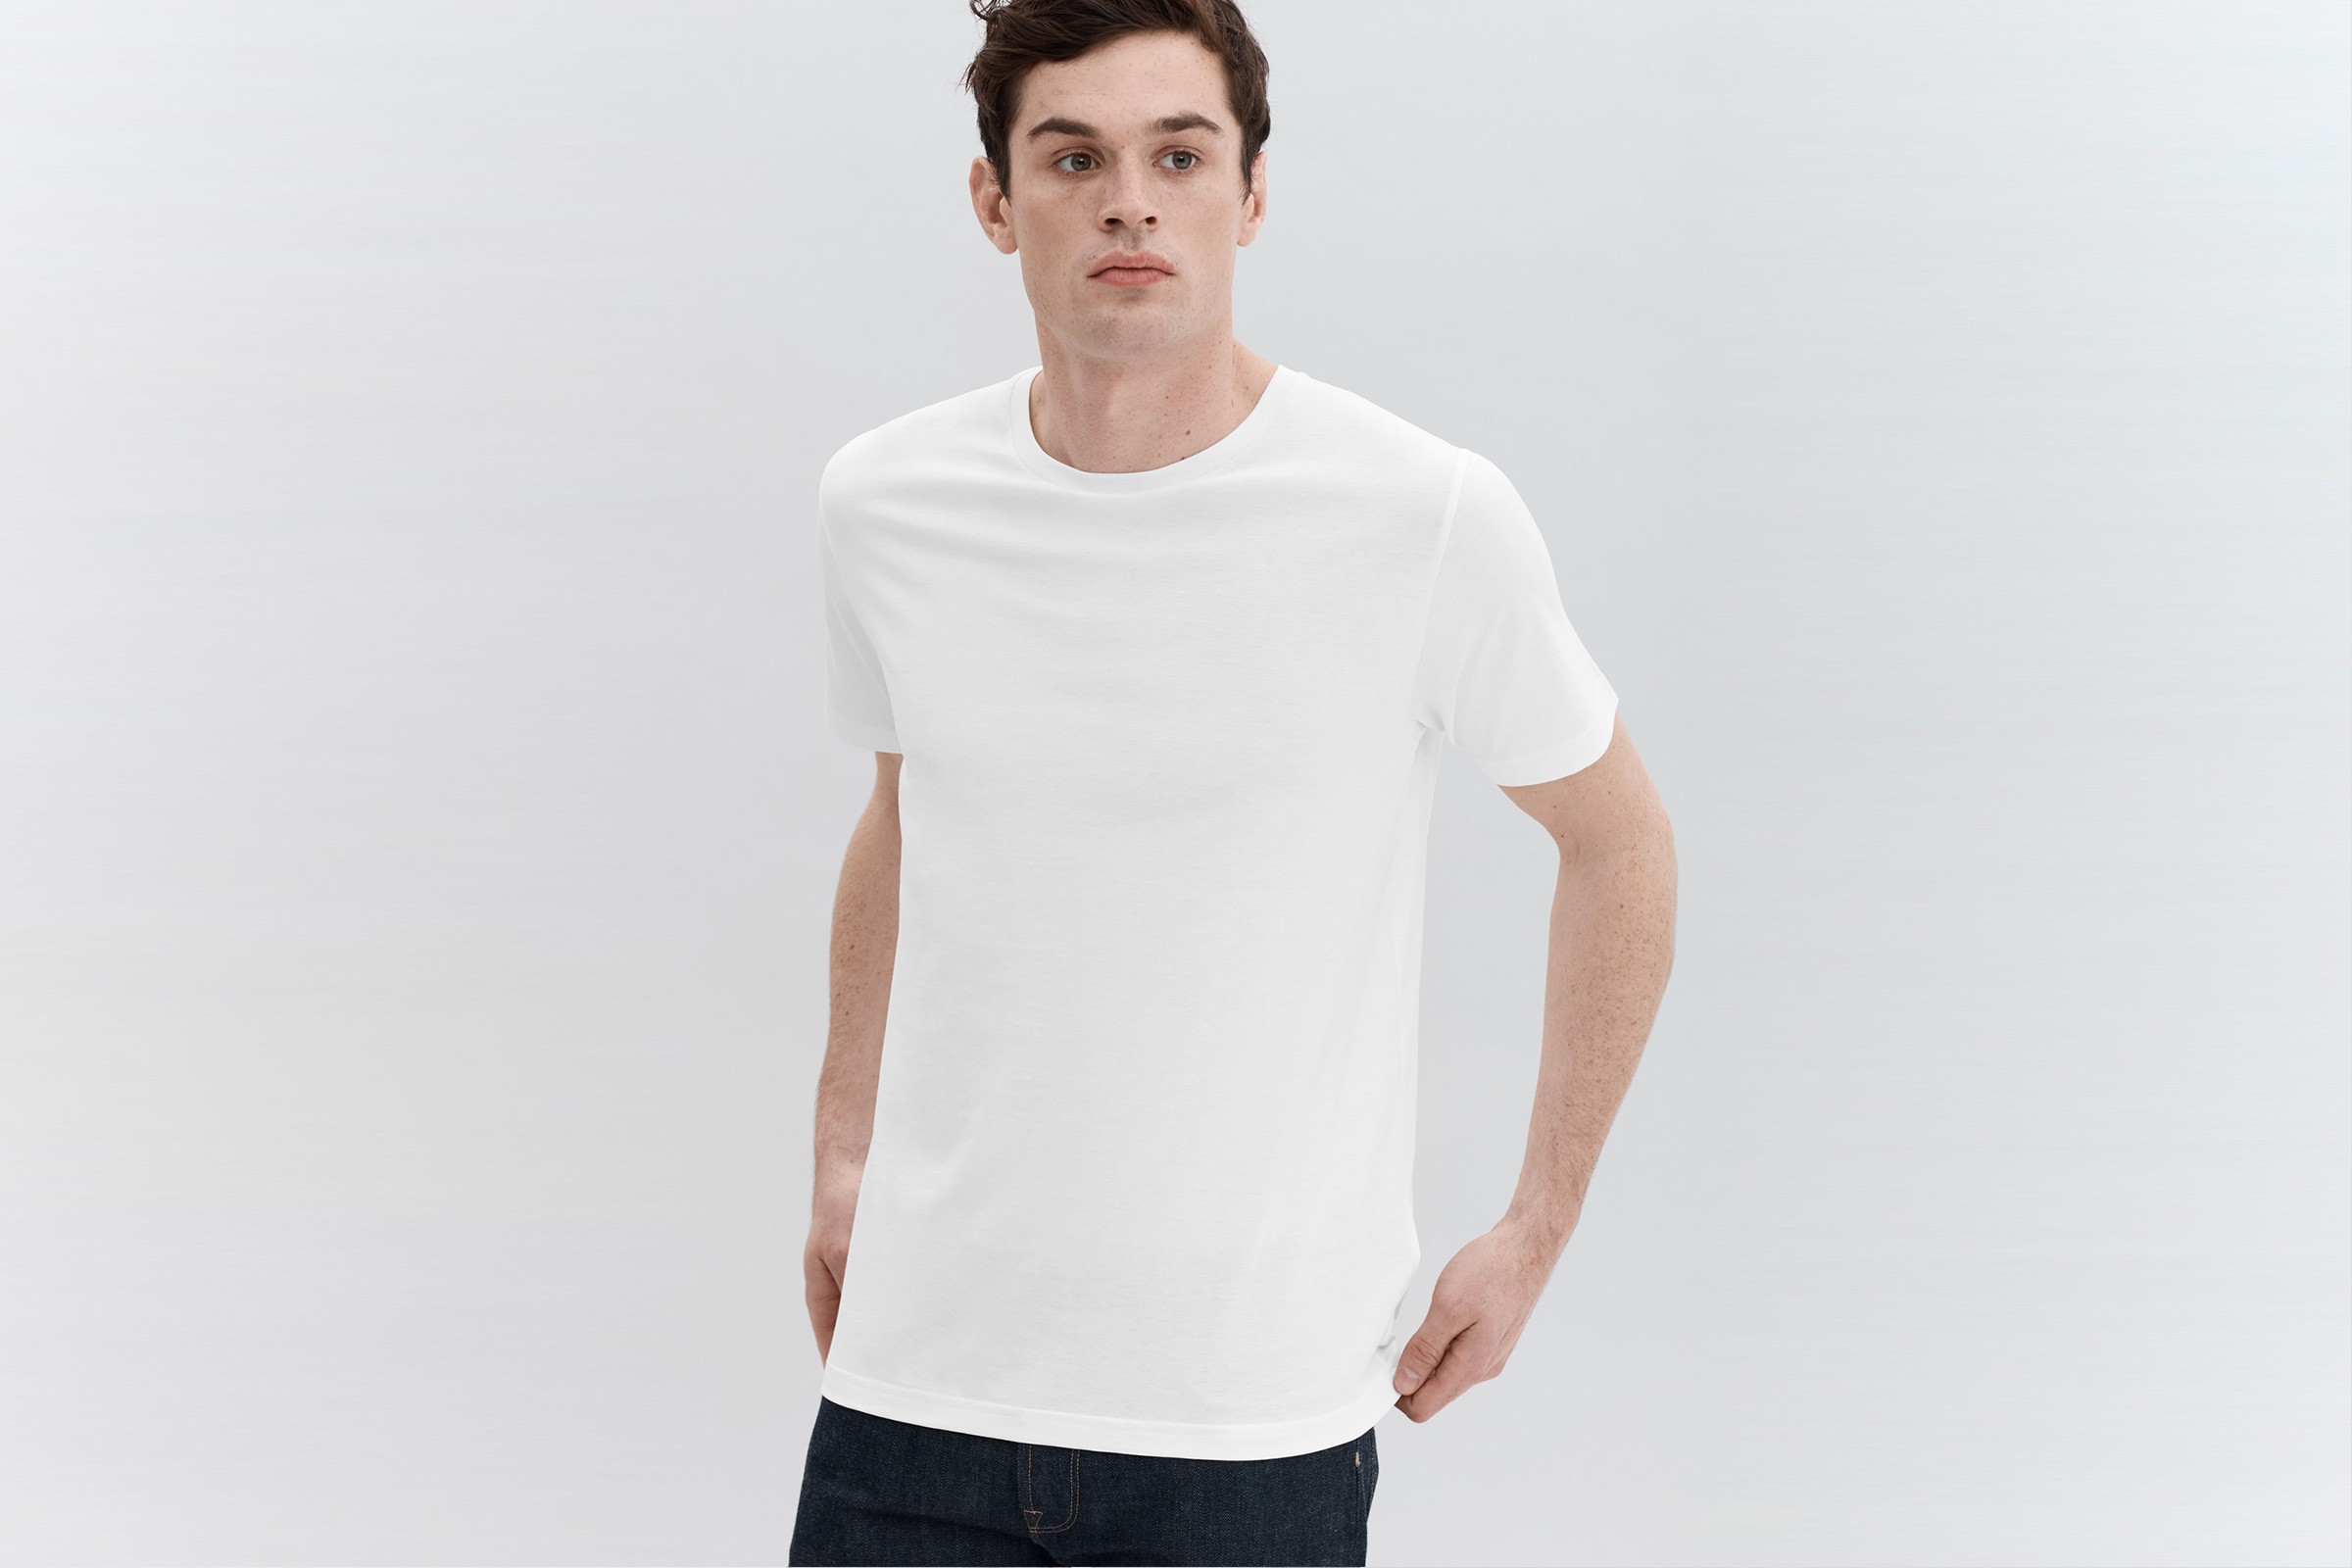 Men's Basic Tees HANDVAERK